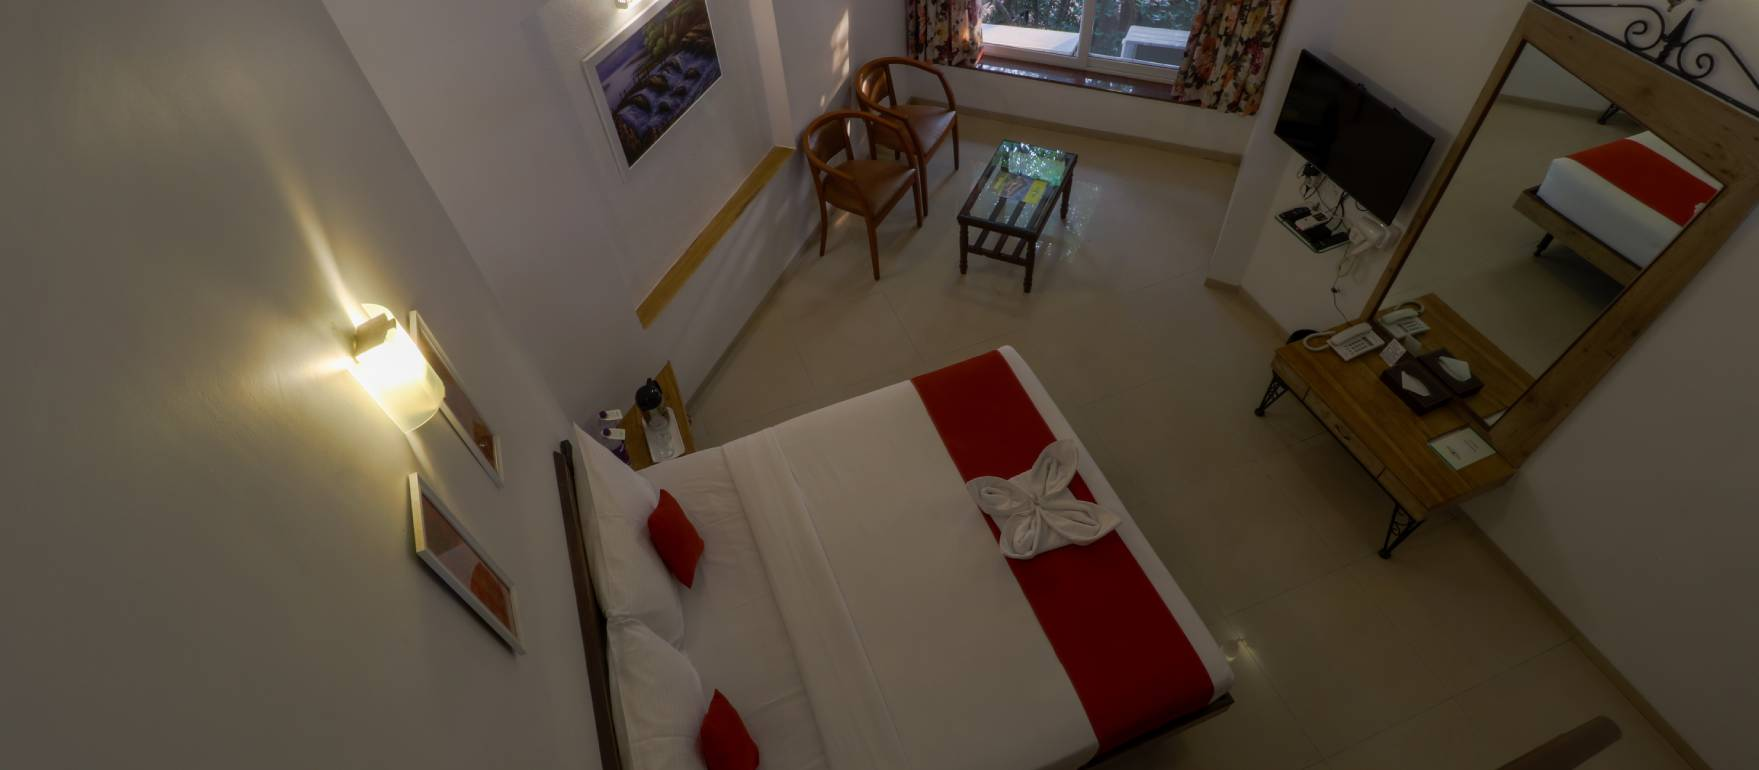 Best Hotel in Mahabaleshwar